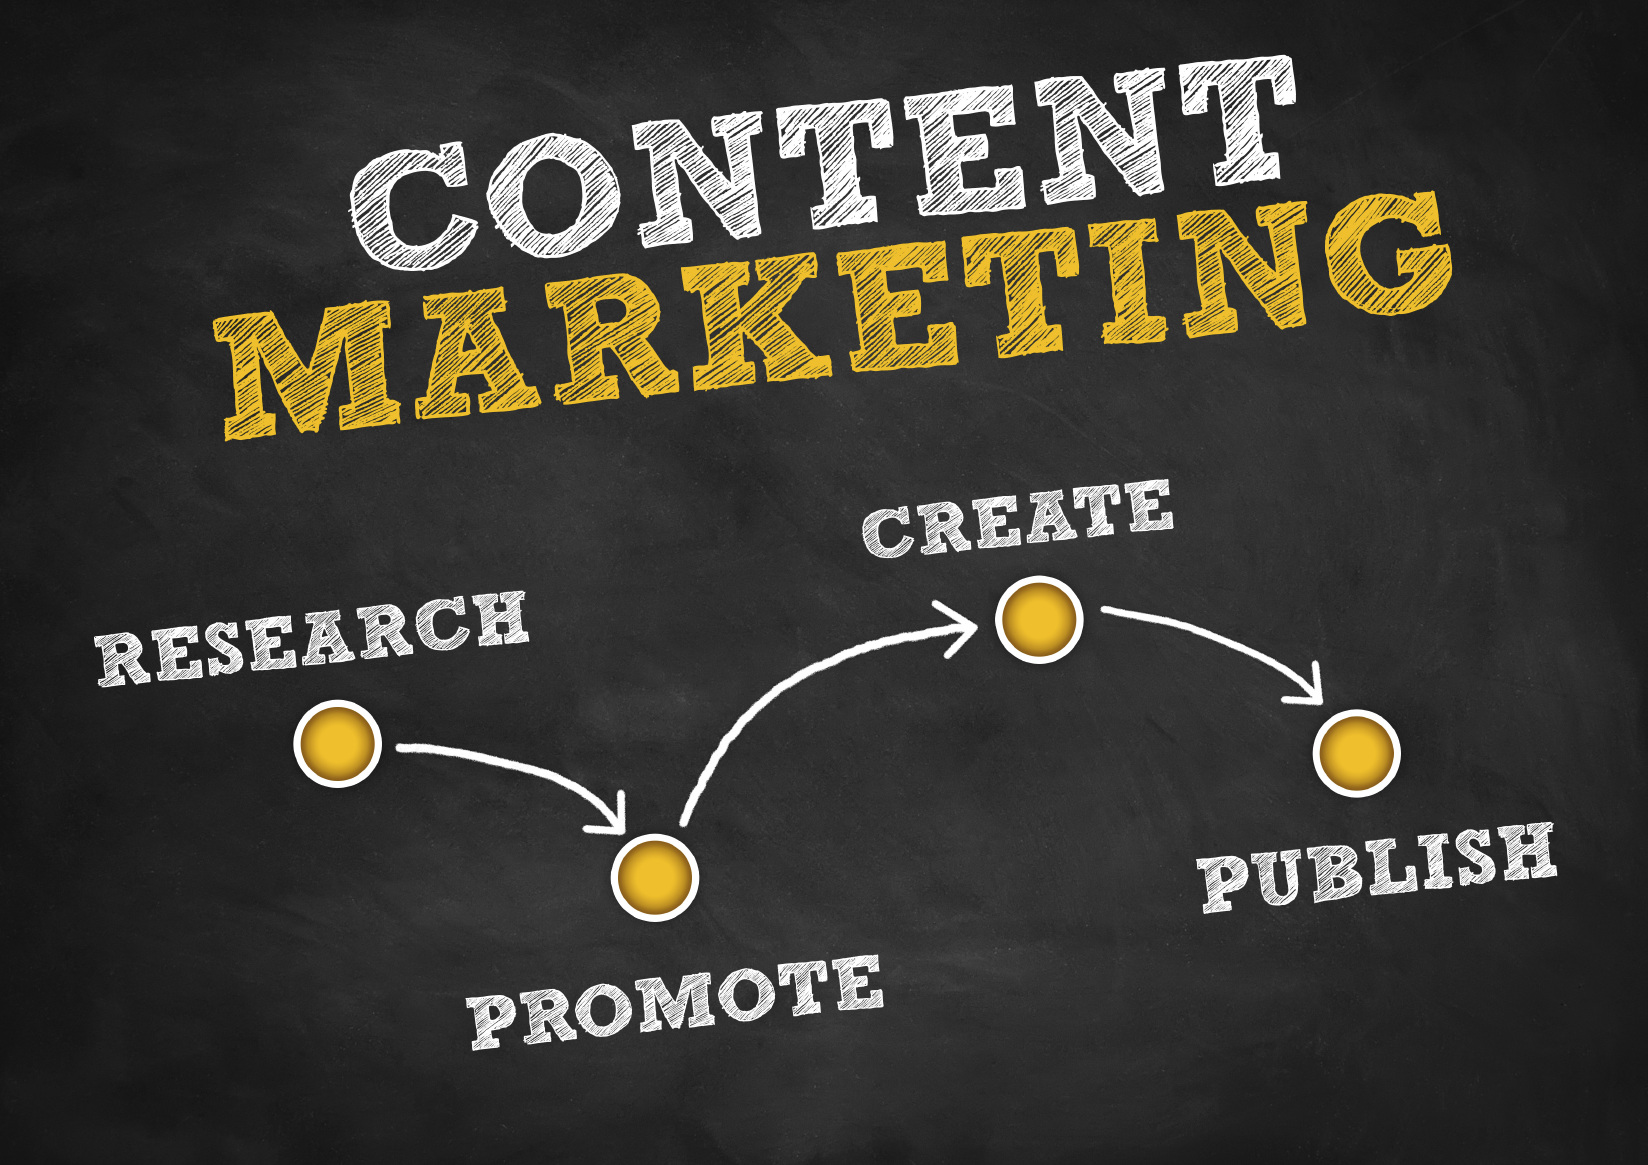 Content marketing, Digital agency Malaysia, Social media marketing, Marketing communications, Corporate video, Website design, SEO services, Internet marketing